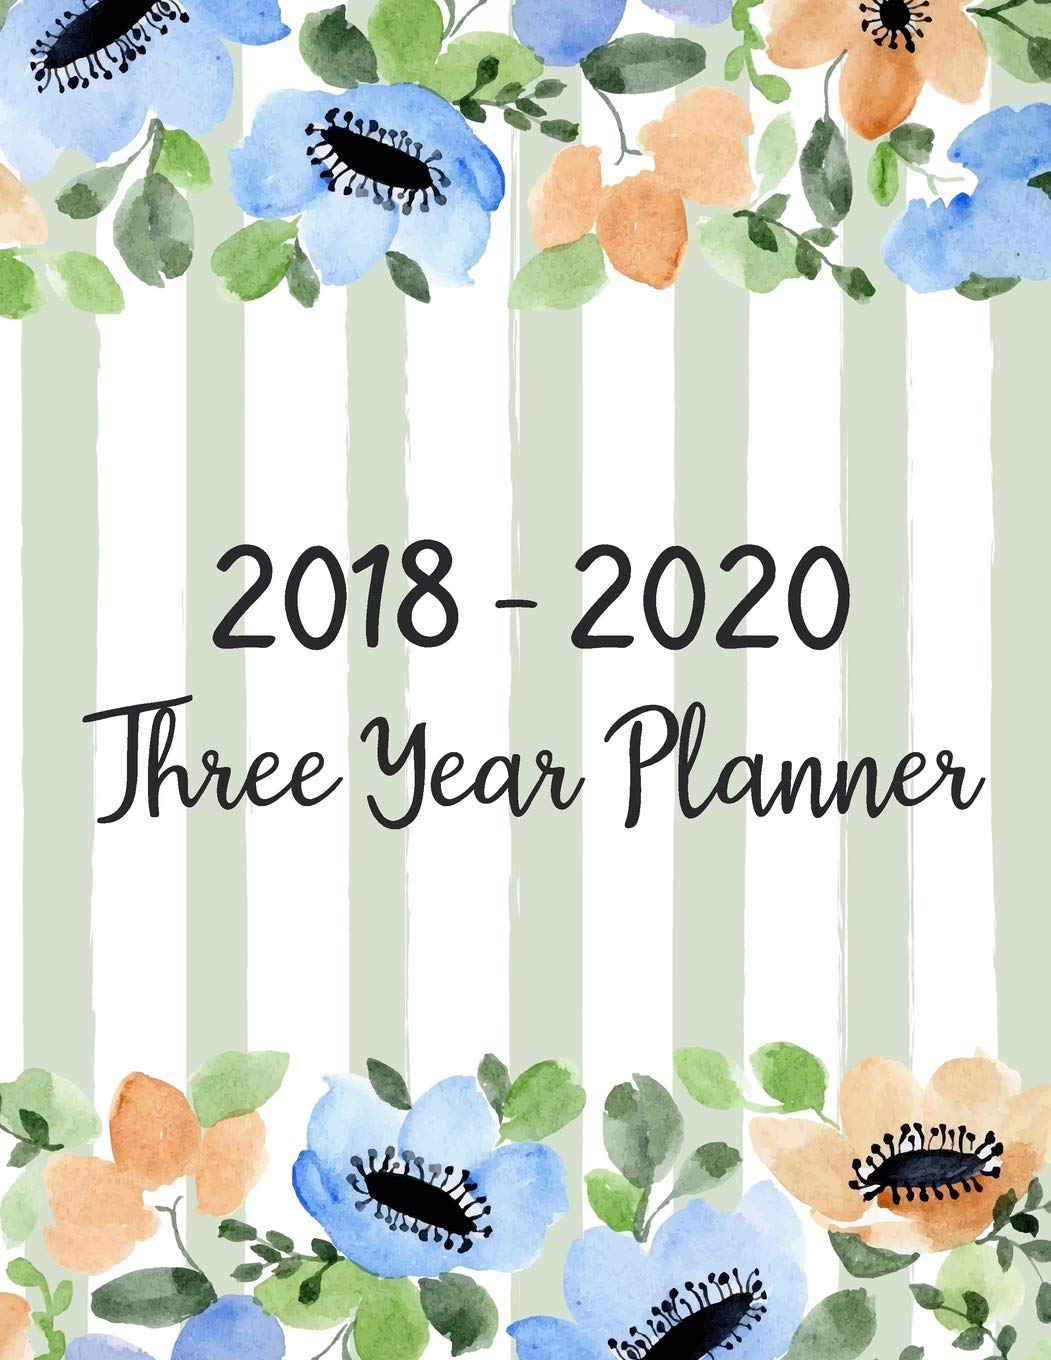 2018 - 2020 Three Year Planner: Three Years - Daily Weekly Monthly Calendar Planner | 36 Months January 2018 to December 2020 For Academic Agenda ... Three Year Monthly Calendar Academic Planner)